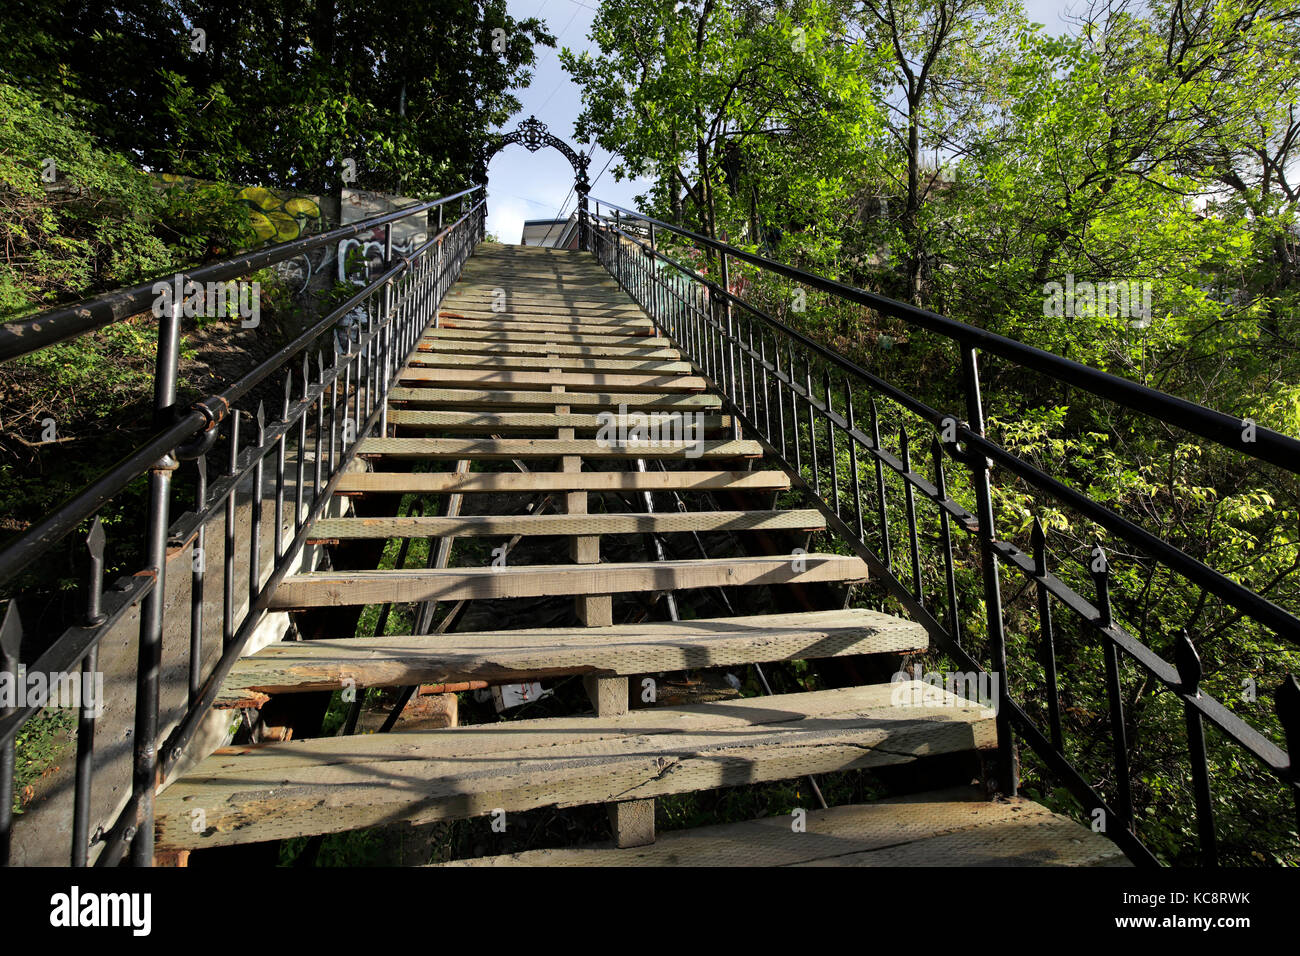 Stairs to old Quebec city. Canada - Stock Image